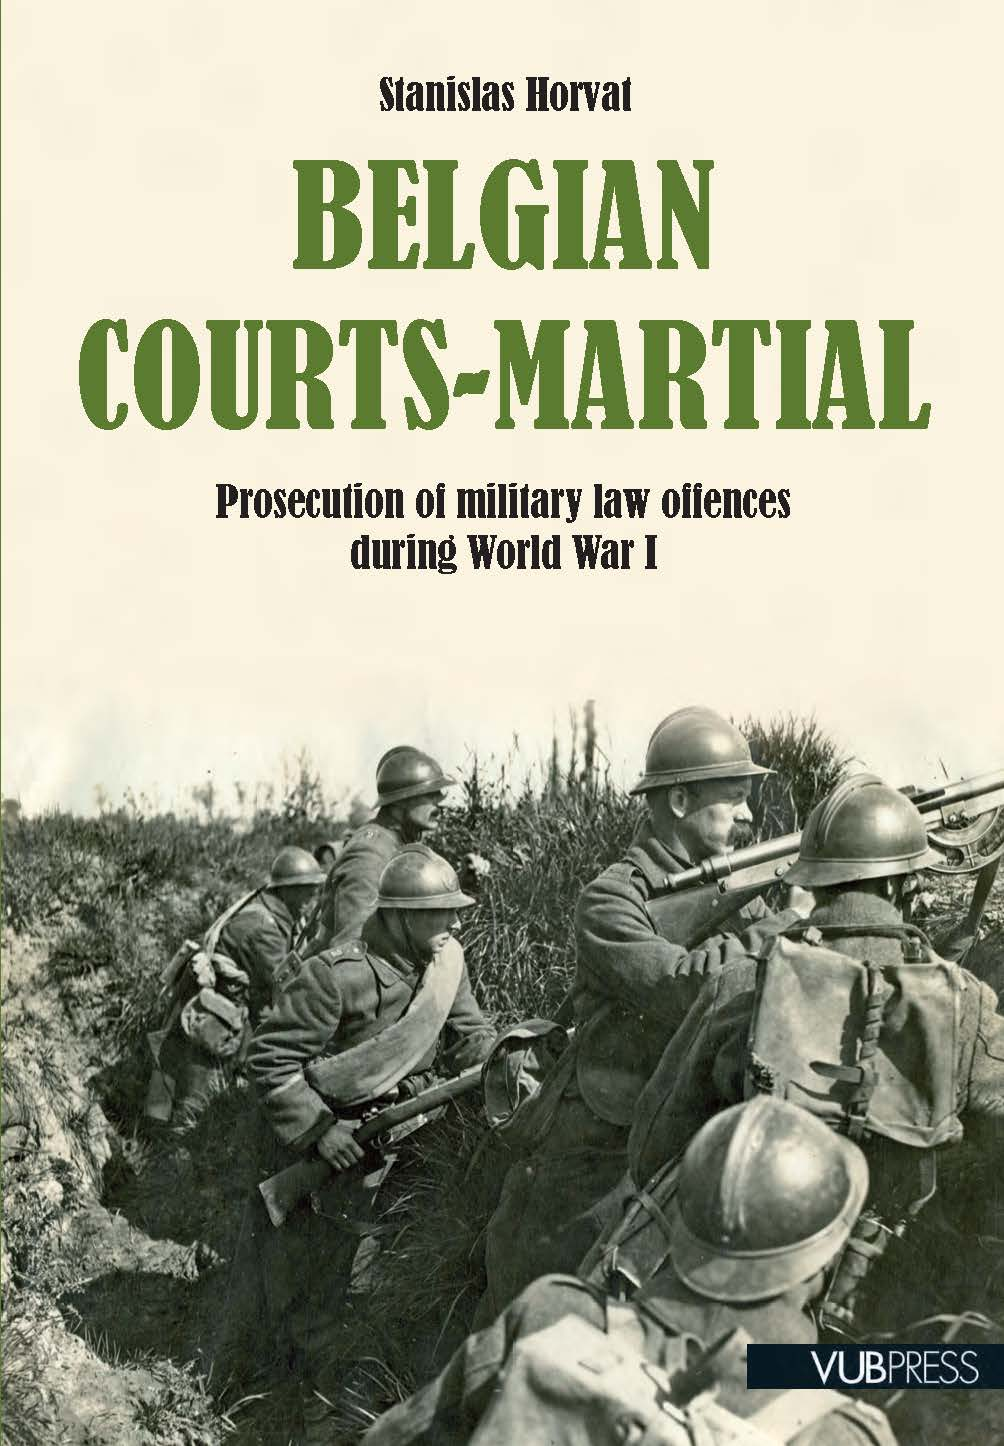 BELGIAN COURTS-MARTIAL. PROSECUTION OF MILITARY LAW OFFENCES DURING WORLD WAR I